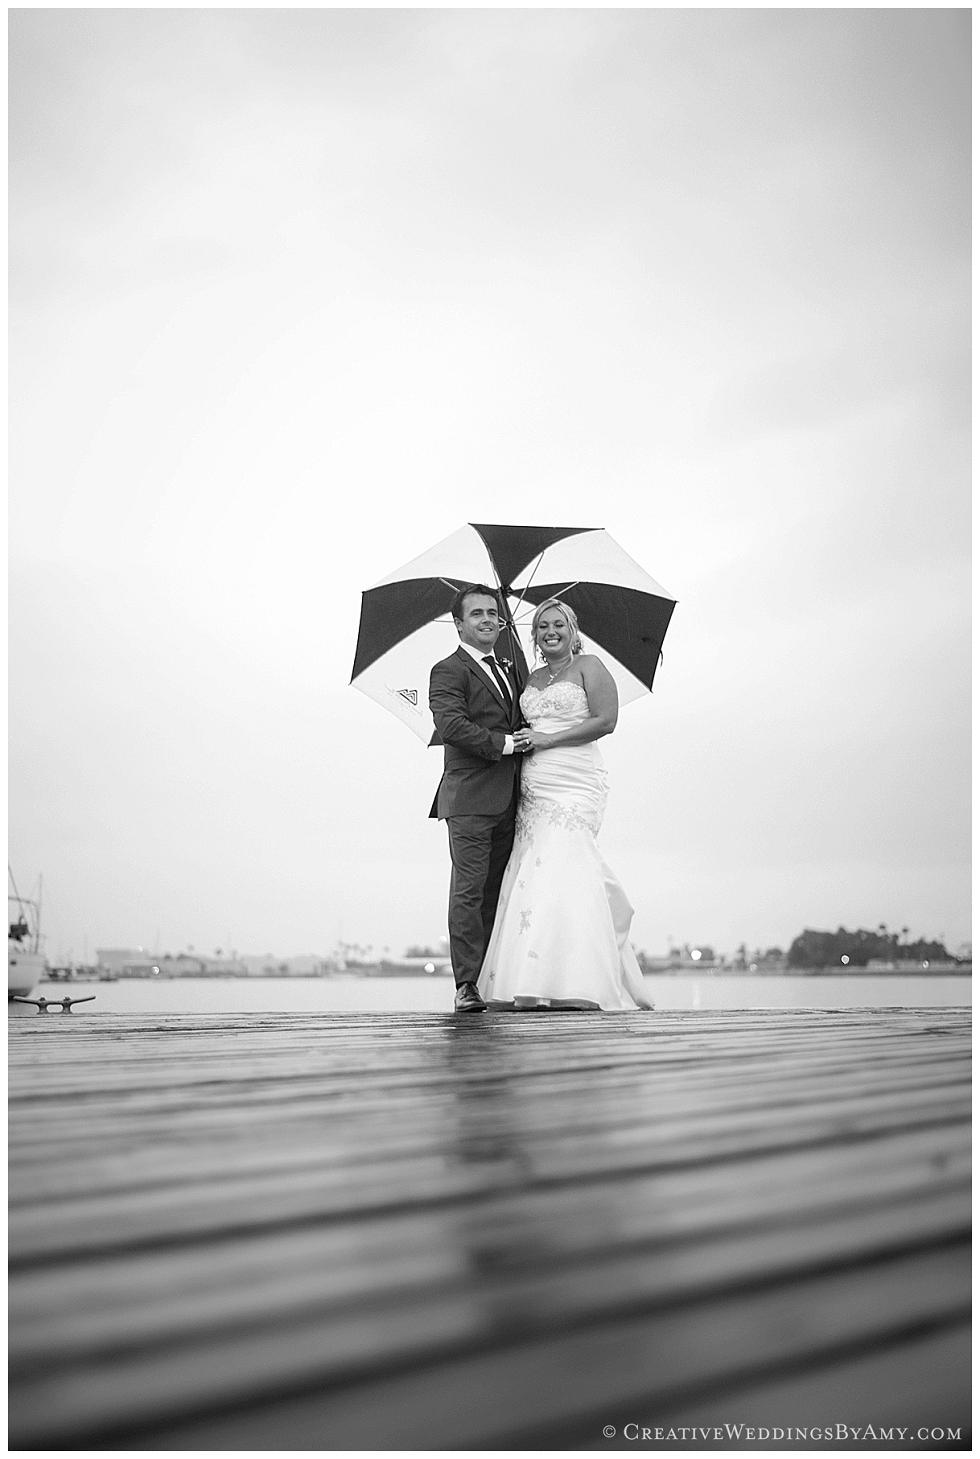 Rainy wedding in Coronado